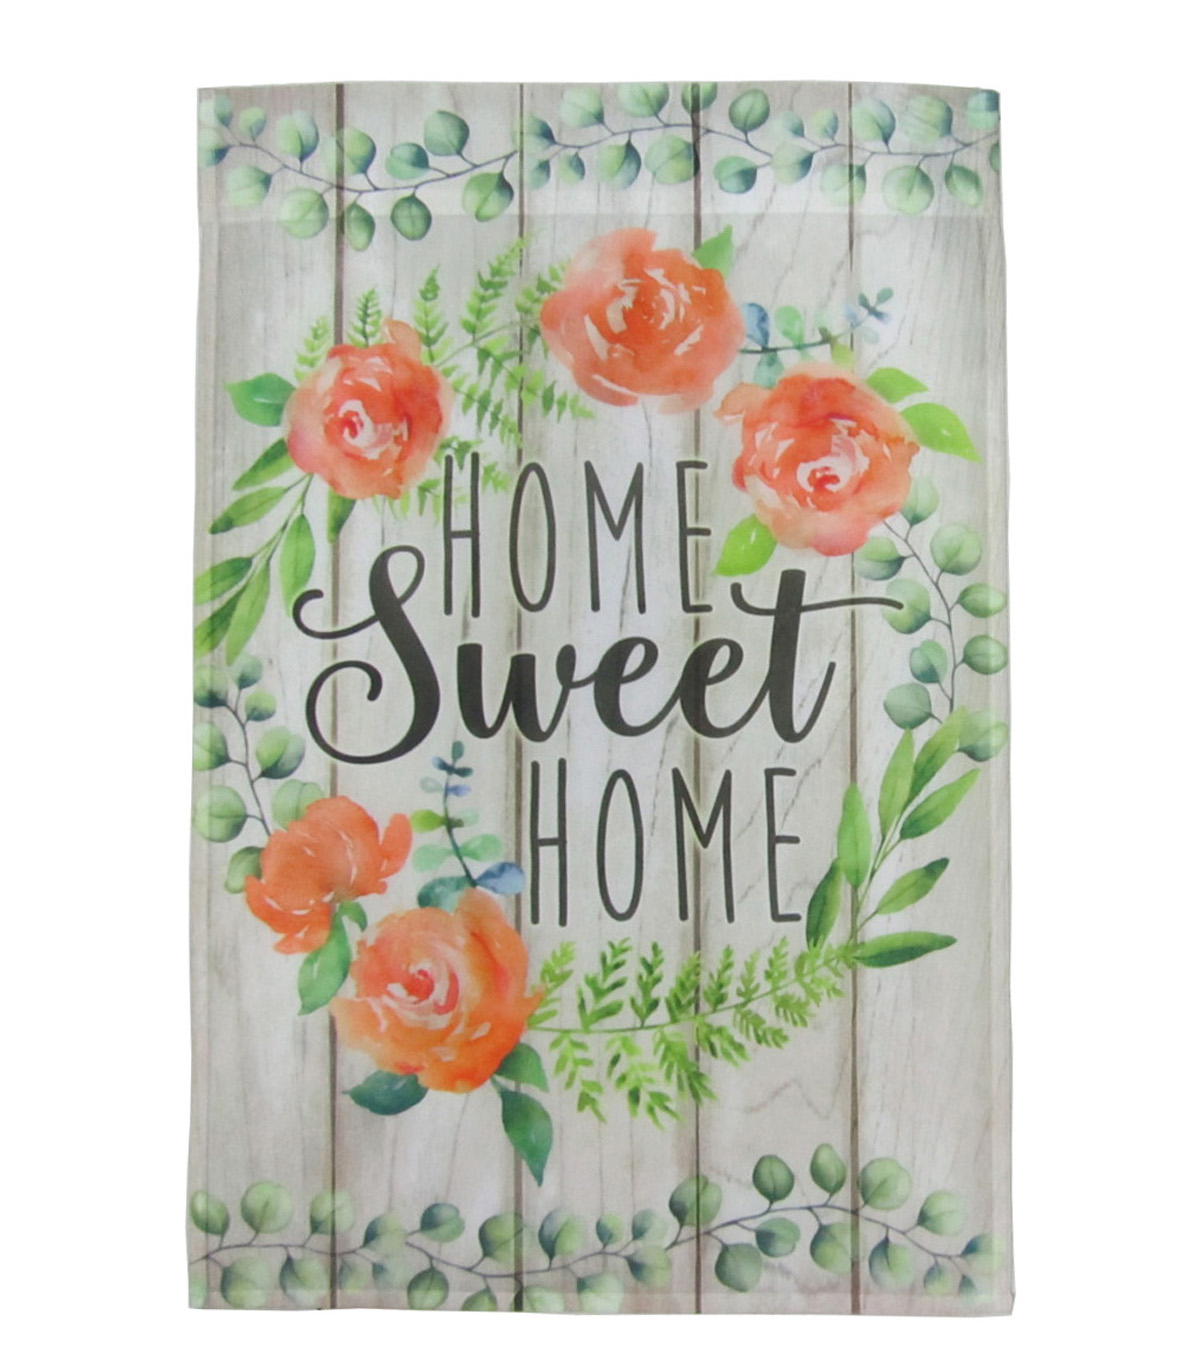 Home sweet home fabric pictures of 12.